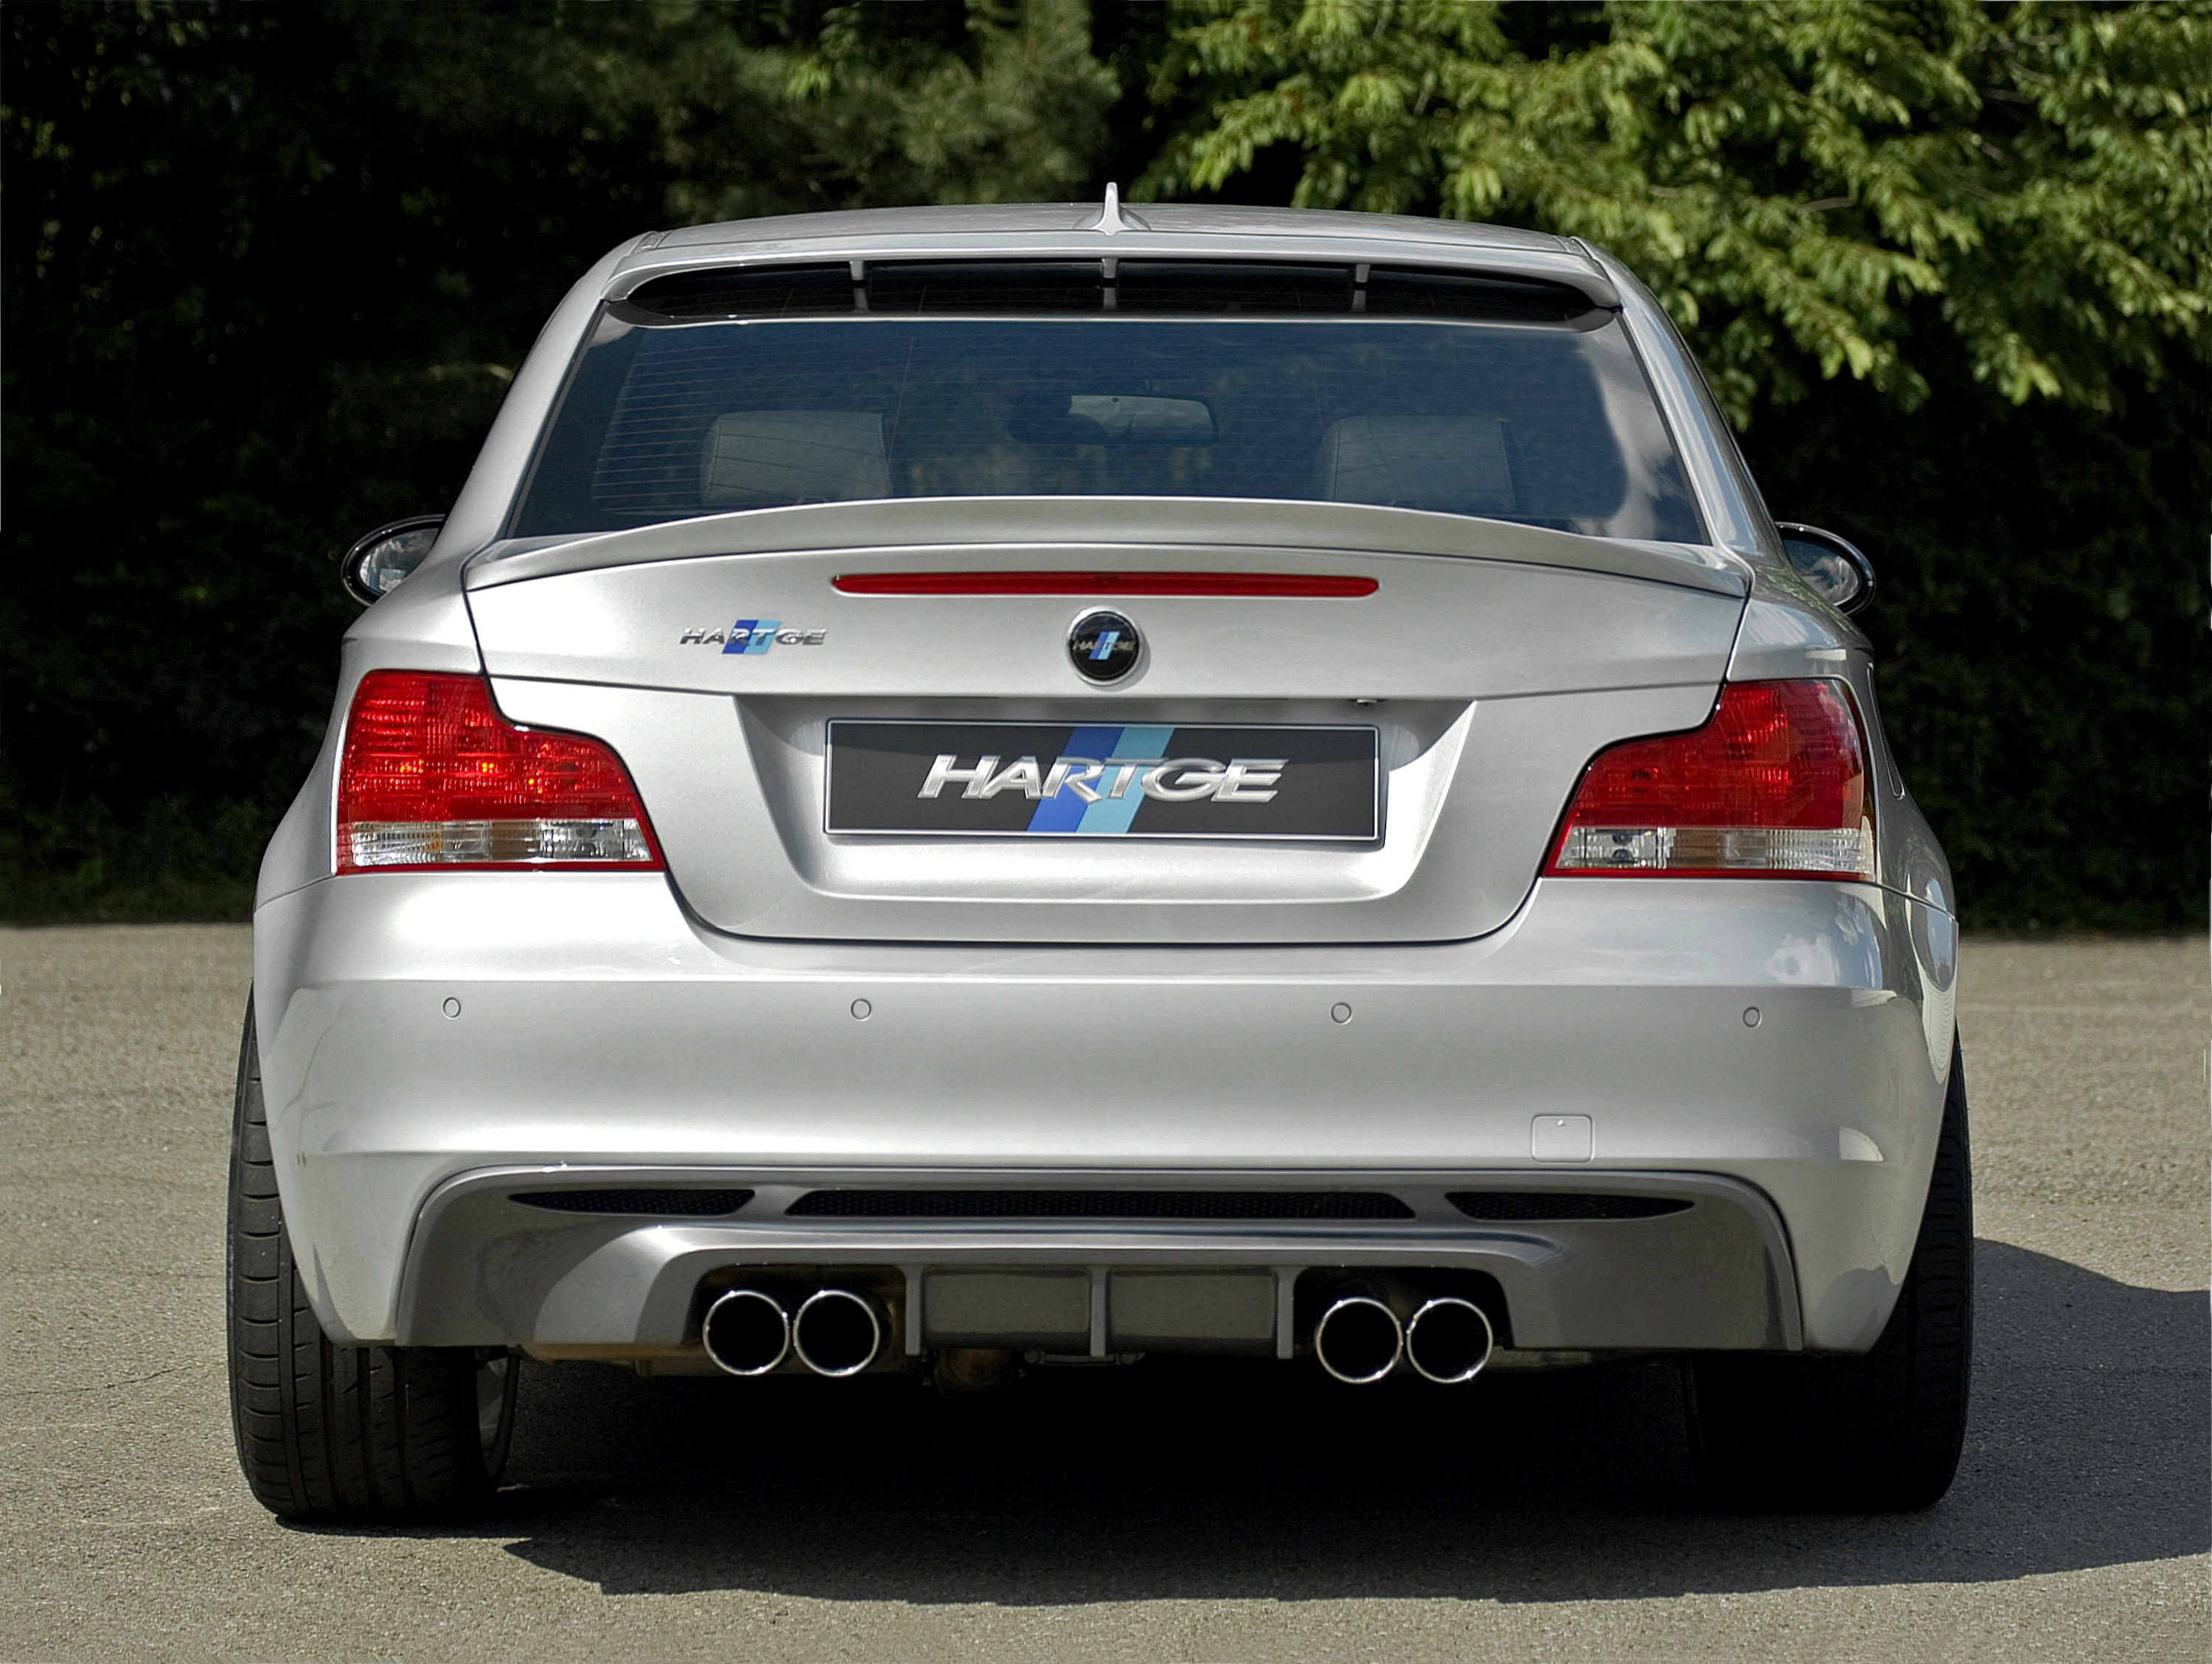 HARTGE BMW 135i Coupe - Picture 9049